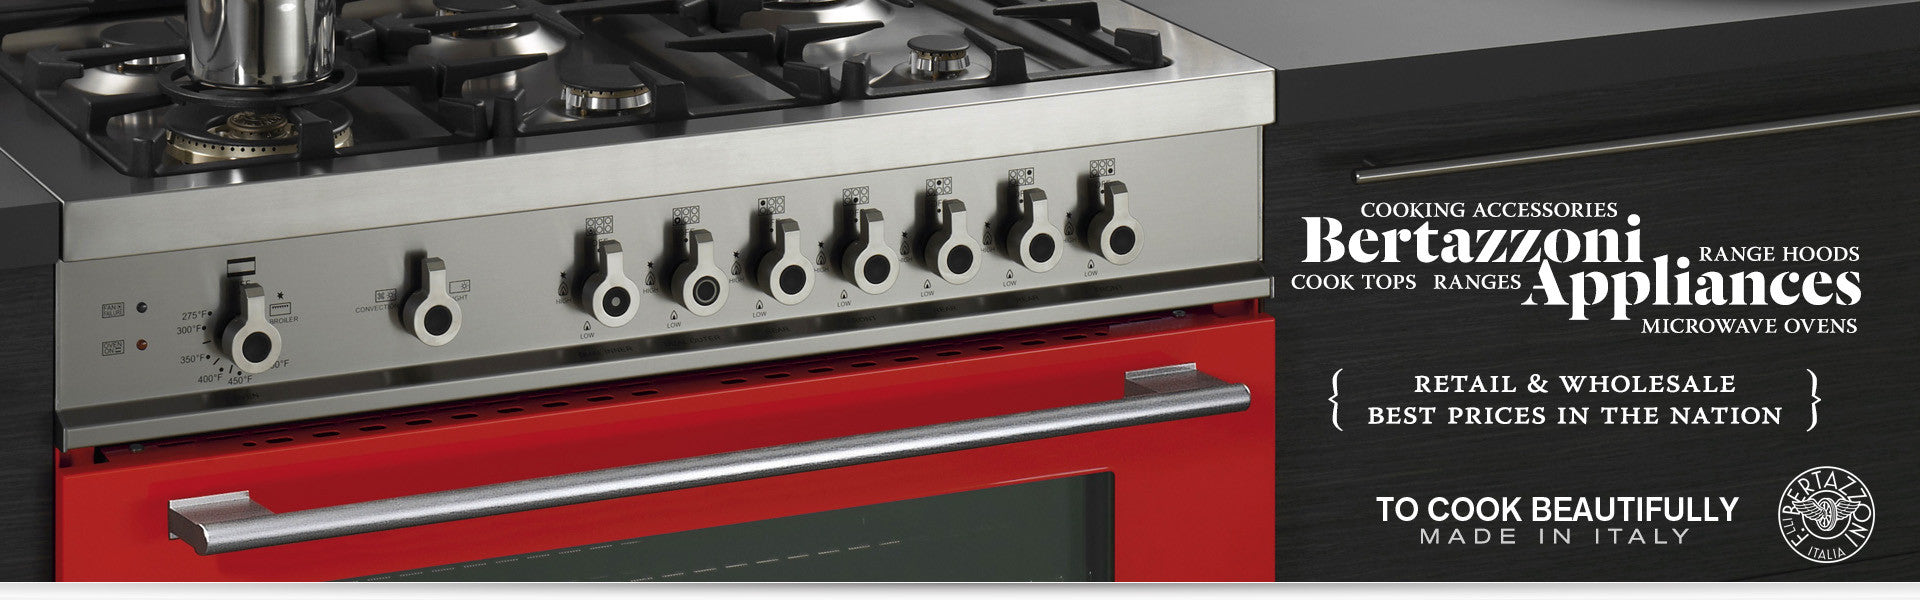 Bertazzoni Appliances at Mega Supply Store